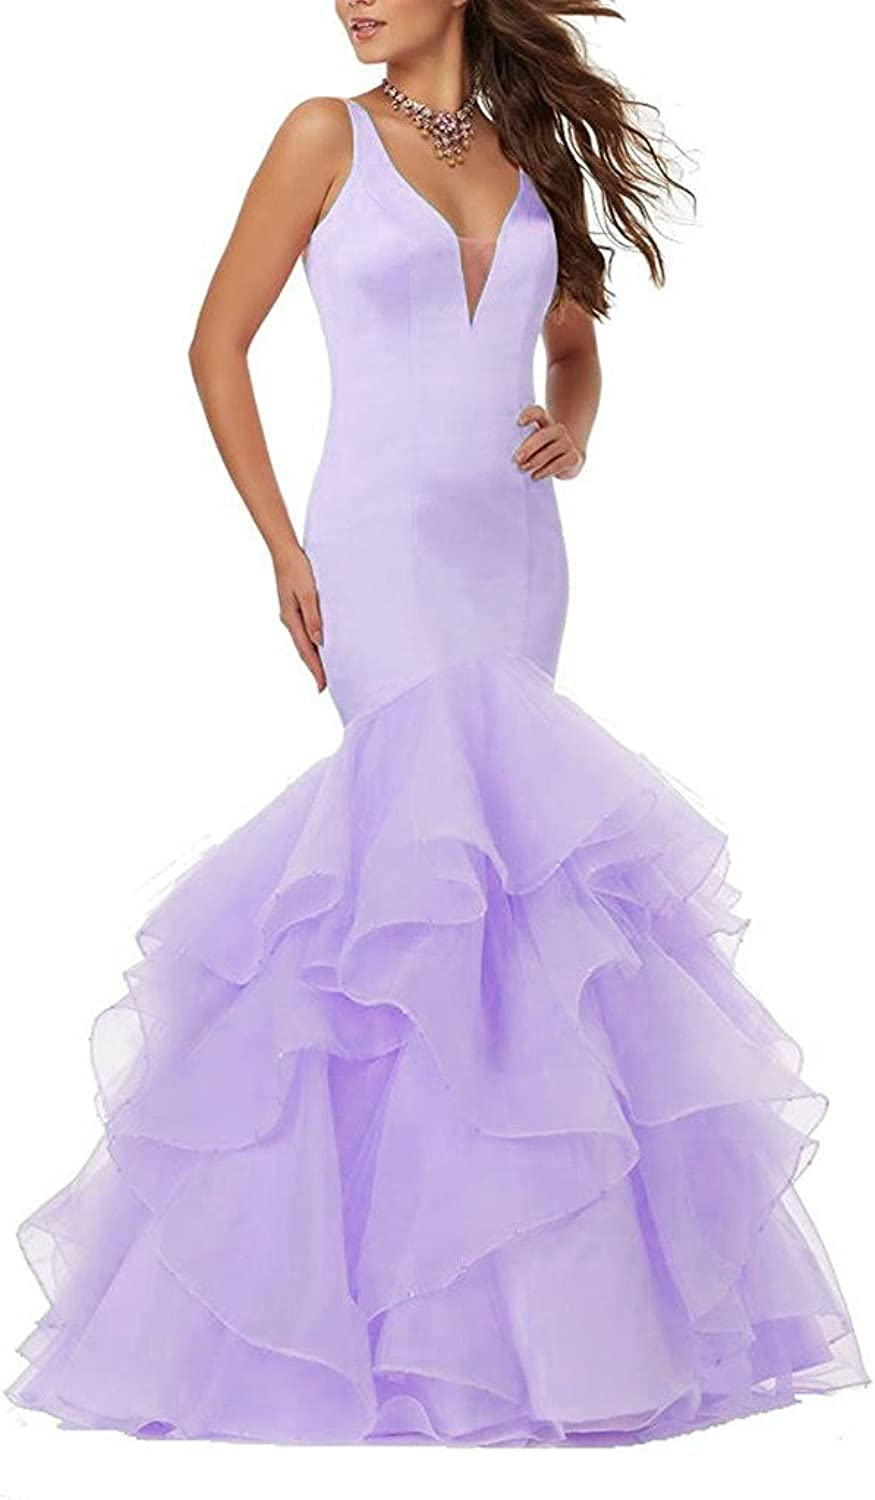 Ellenhouse Women's VNeck Ruffles Mermaid Prom Evening Wedding Party Dress EL202